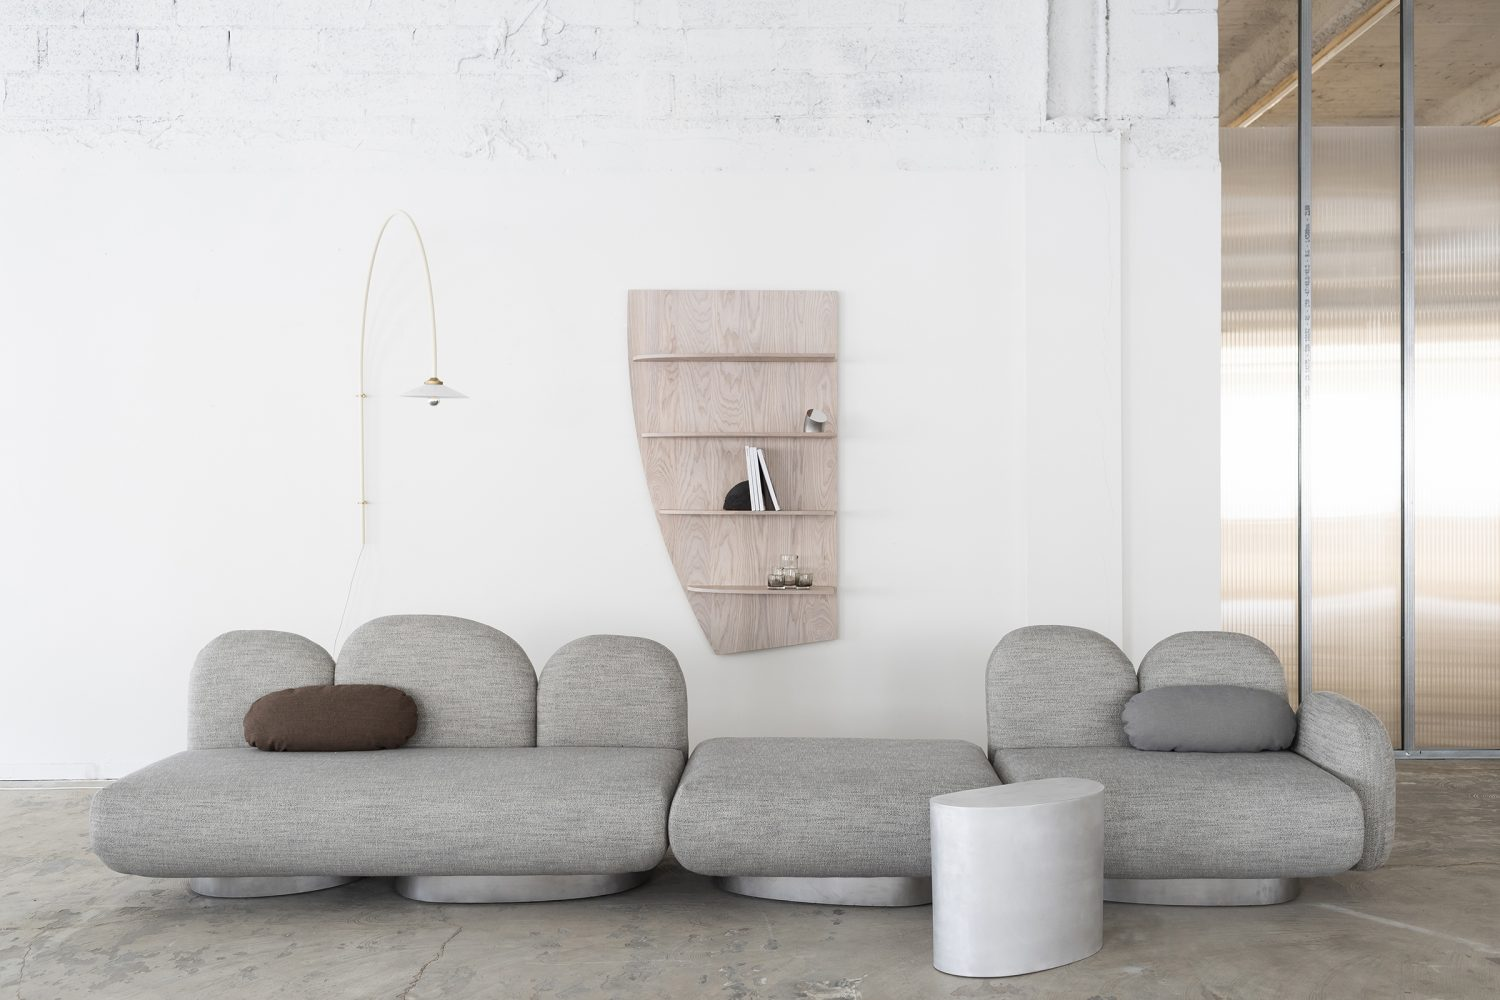 amazing designers M&O 2020: Get To Know The Unique Selection Of 5 Amazing Designers At MOM 2855 vo20 sofa long open scaled